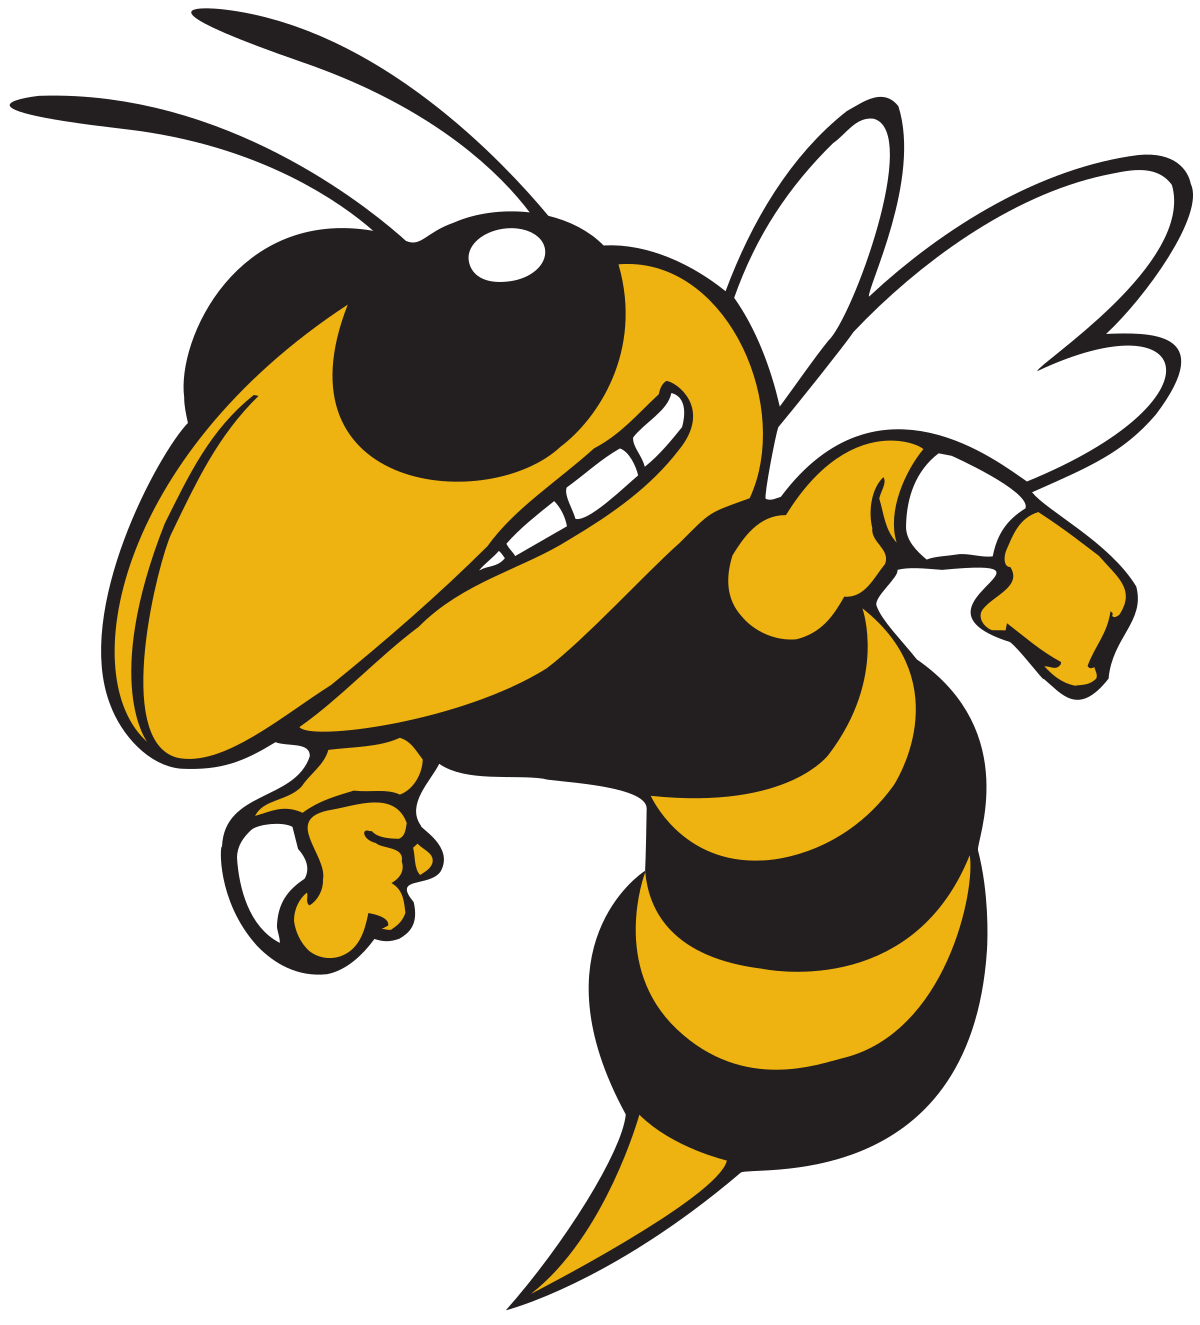 Angry yellow jacket clipart graphic library stock Yellow Jacket Clipart | Free download best Yellow Jacket Clipart on ... graphic library stock